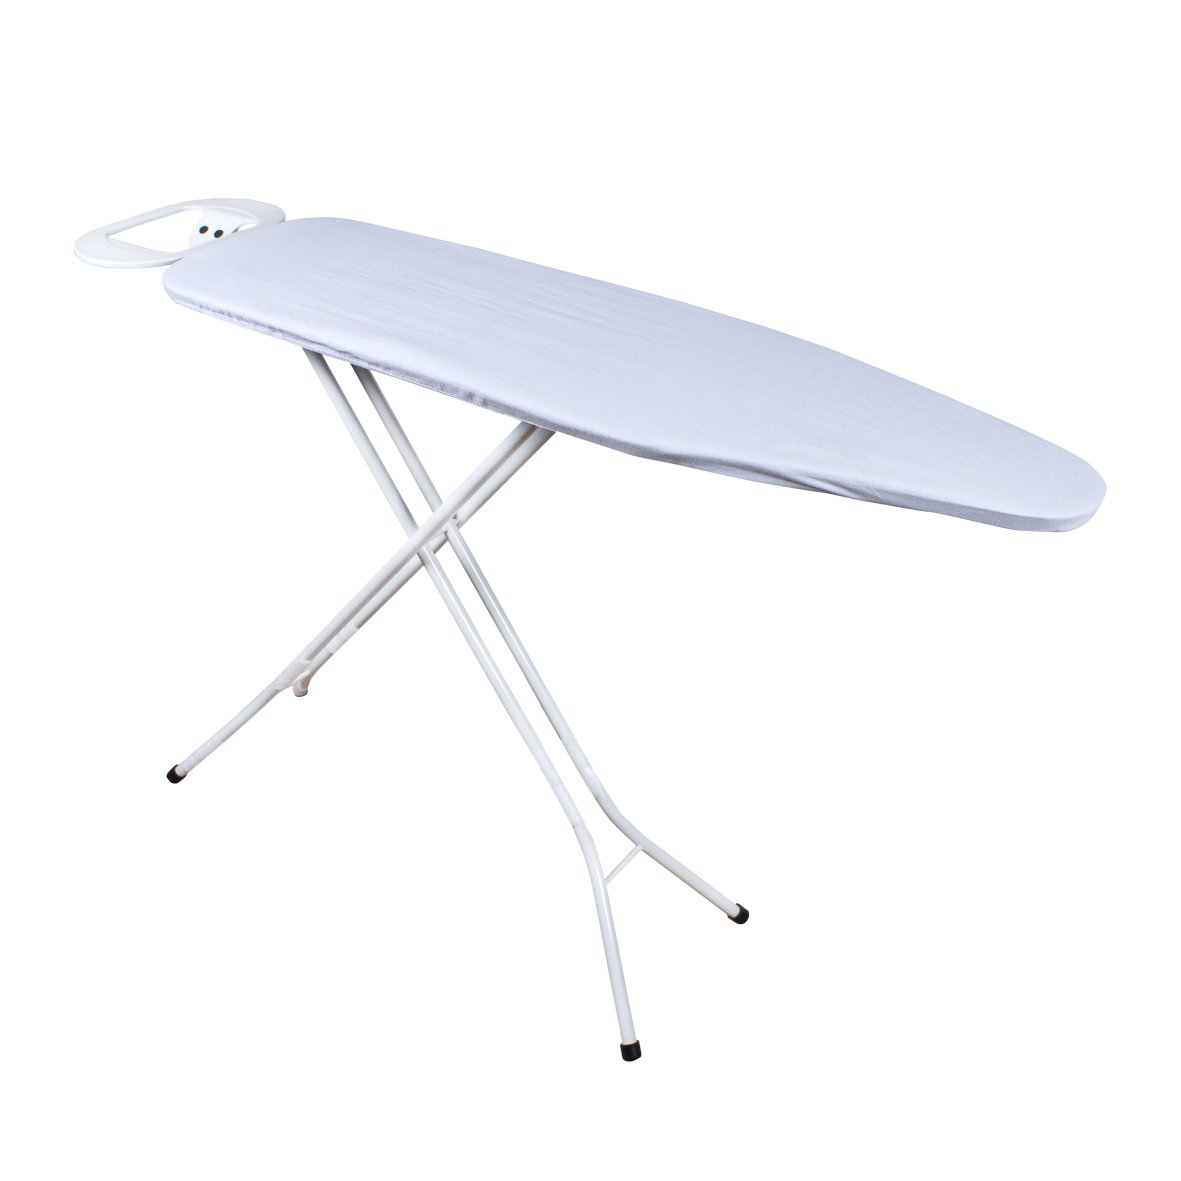 Anika 63600 Lever Action Adjustable Height Ironing Board Size, 110 x 33 cm Benross